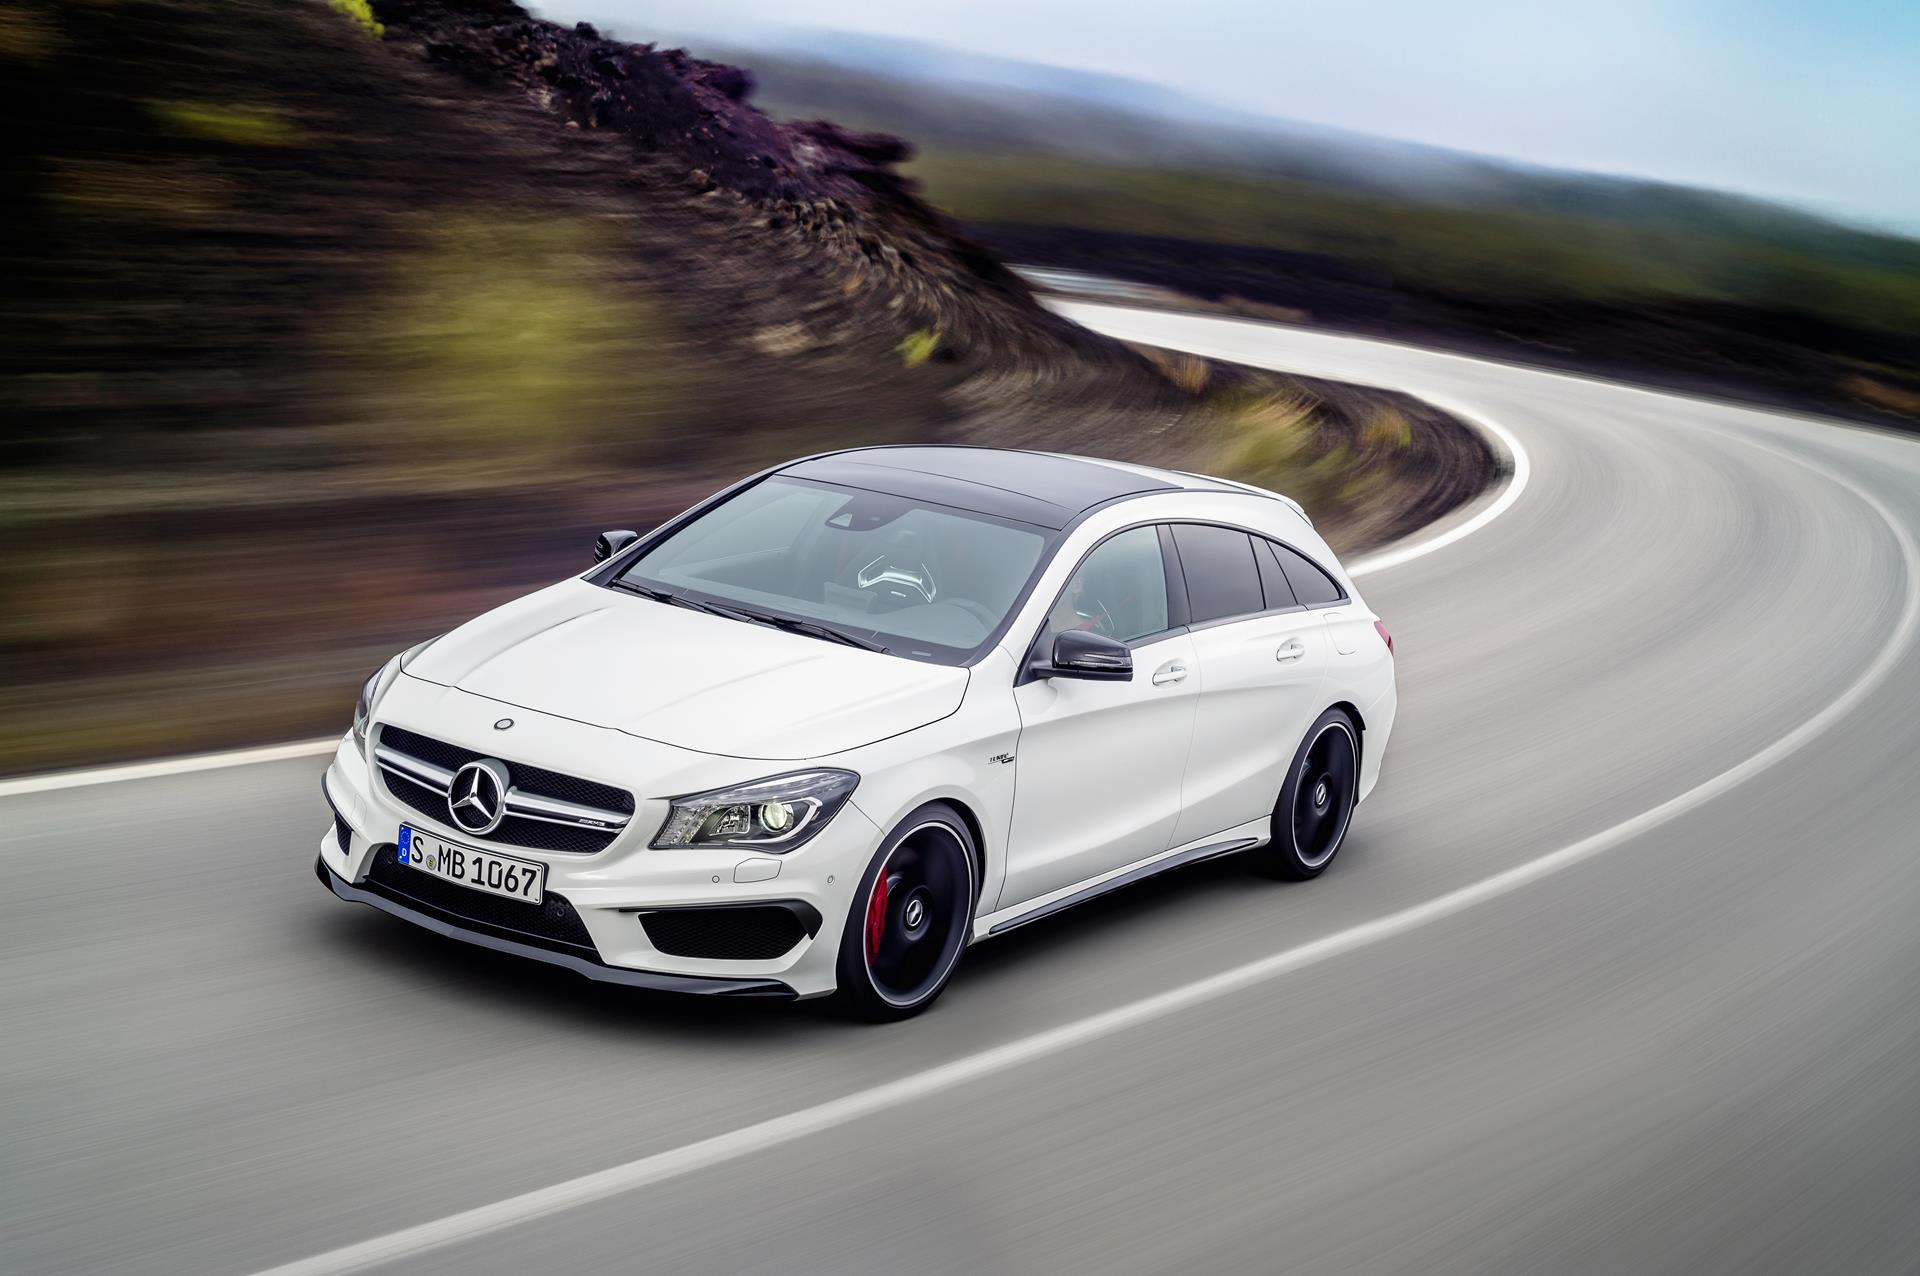 2015 Mercedes Benz CLA 45 AMG Shooting Brake News and Information 1920x1276